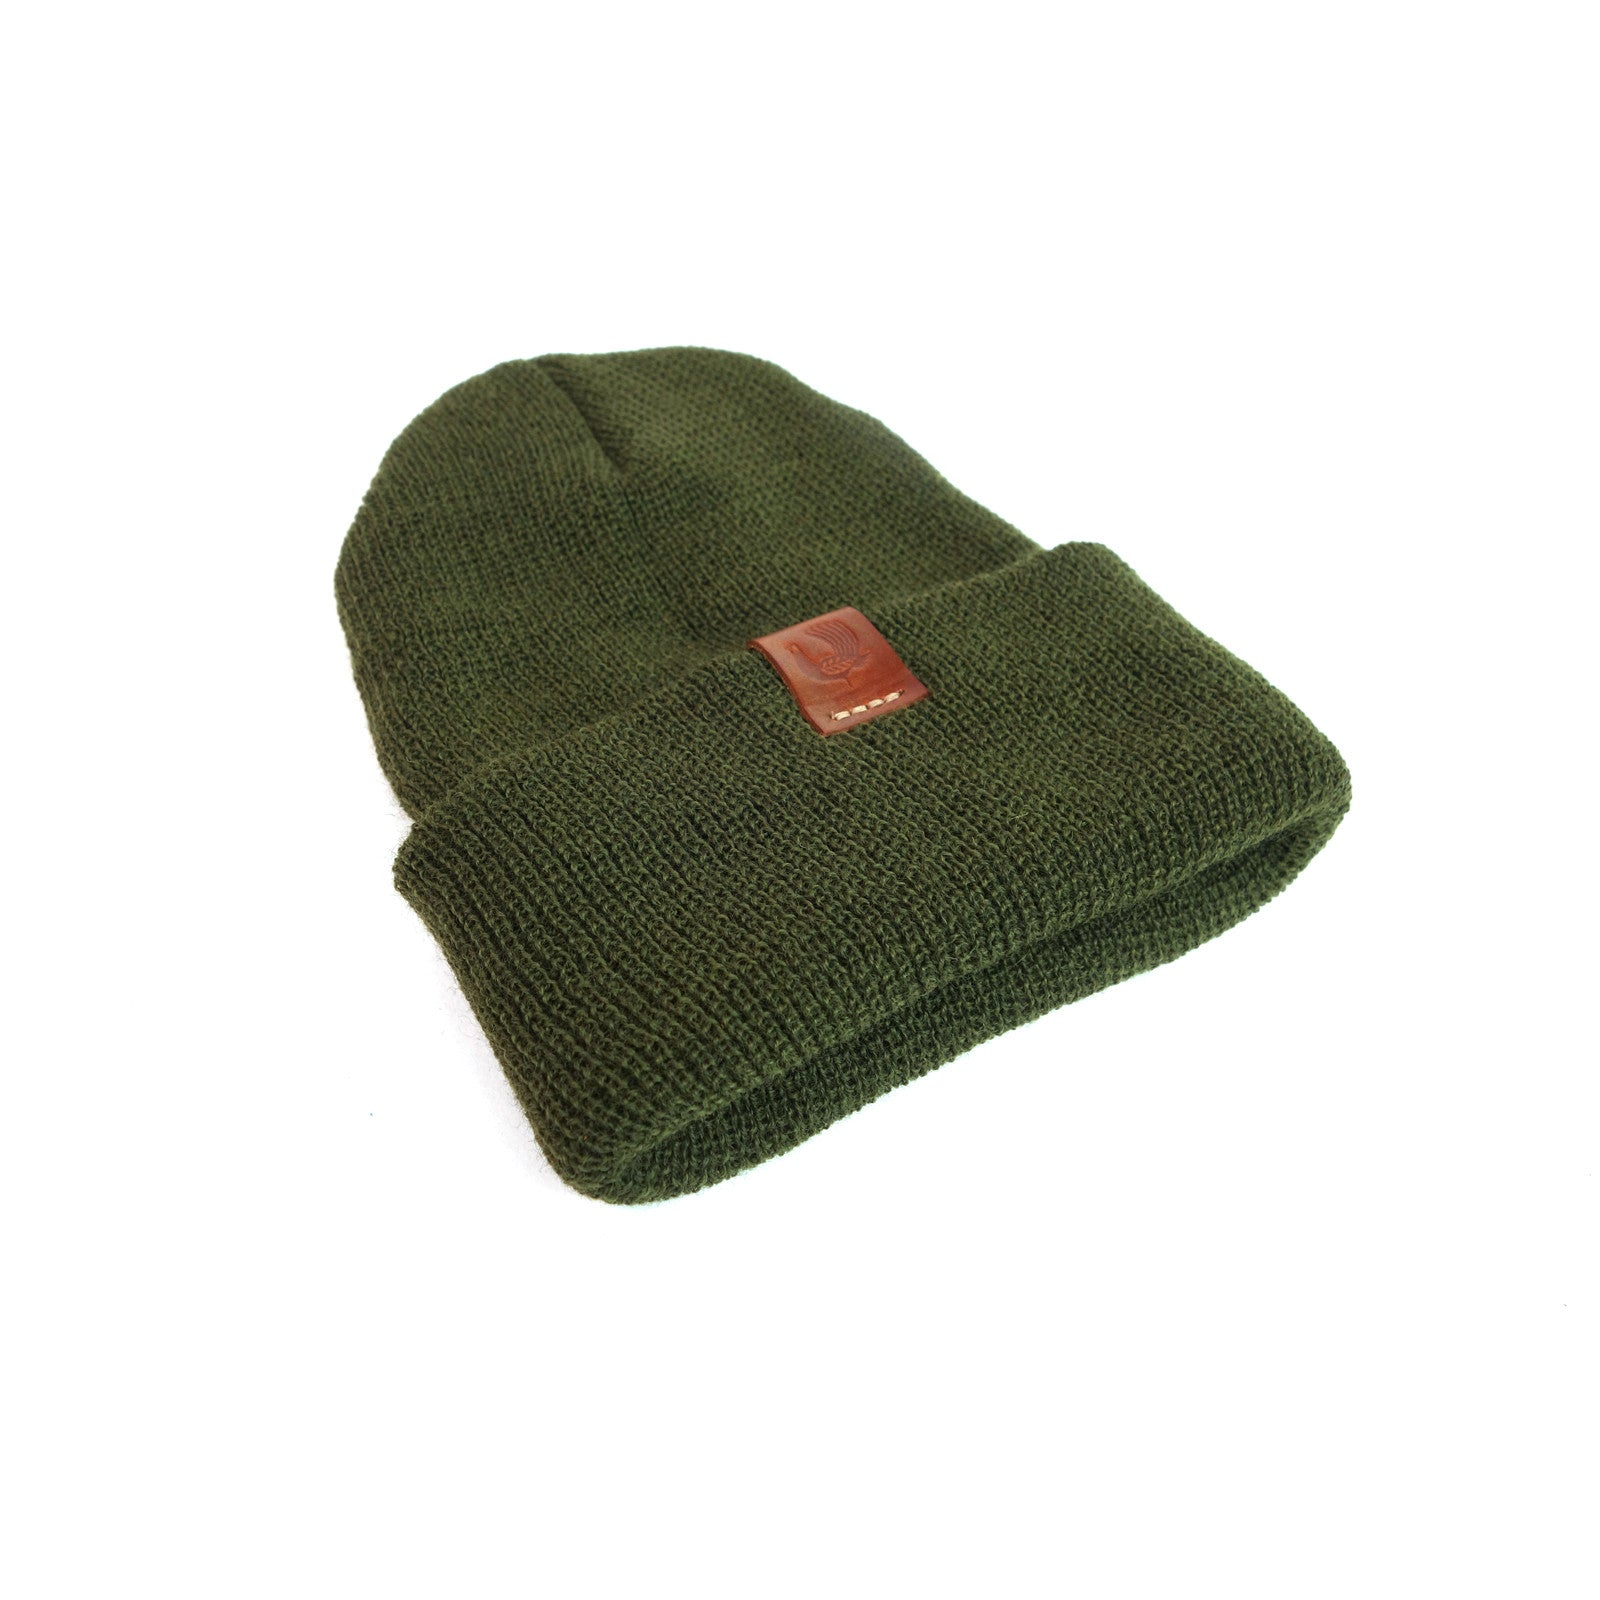 Wool Watch Cap - Olive - Red Clouds Collective - Made in the USA da8e46ac2e8